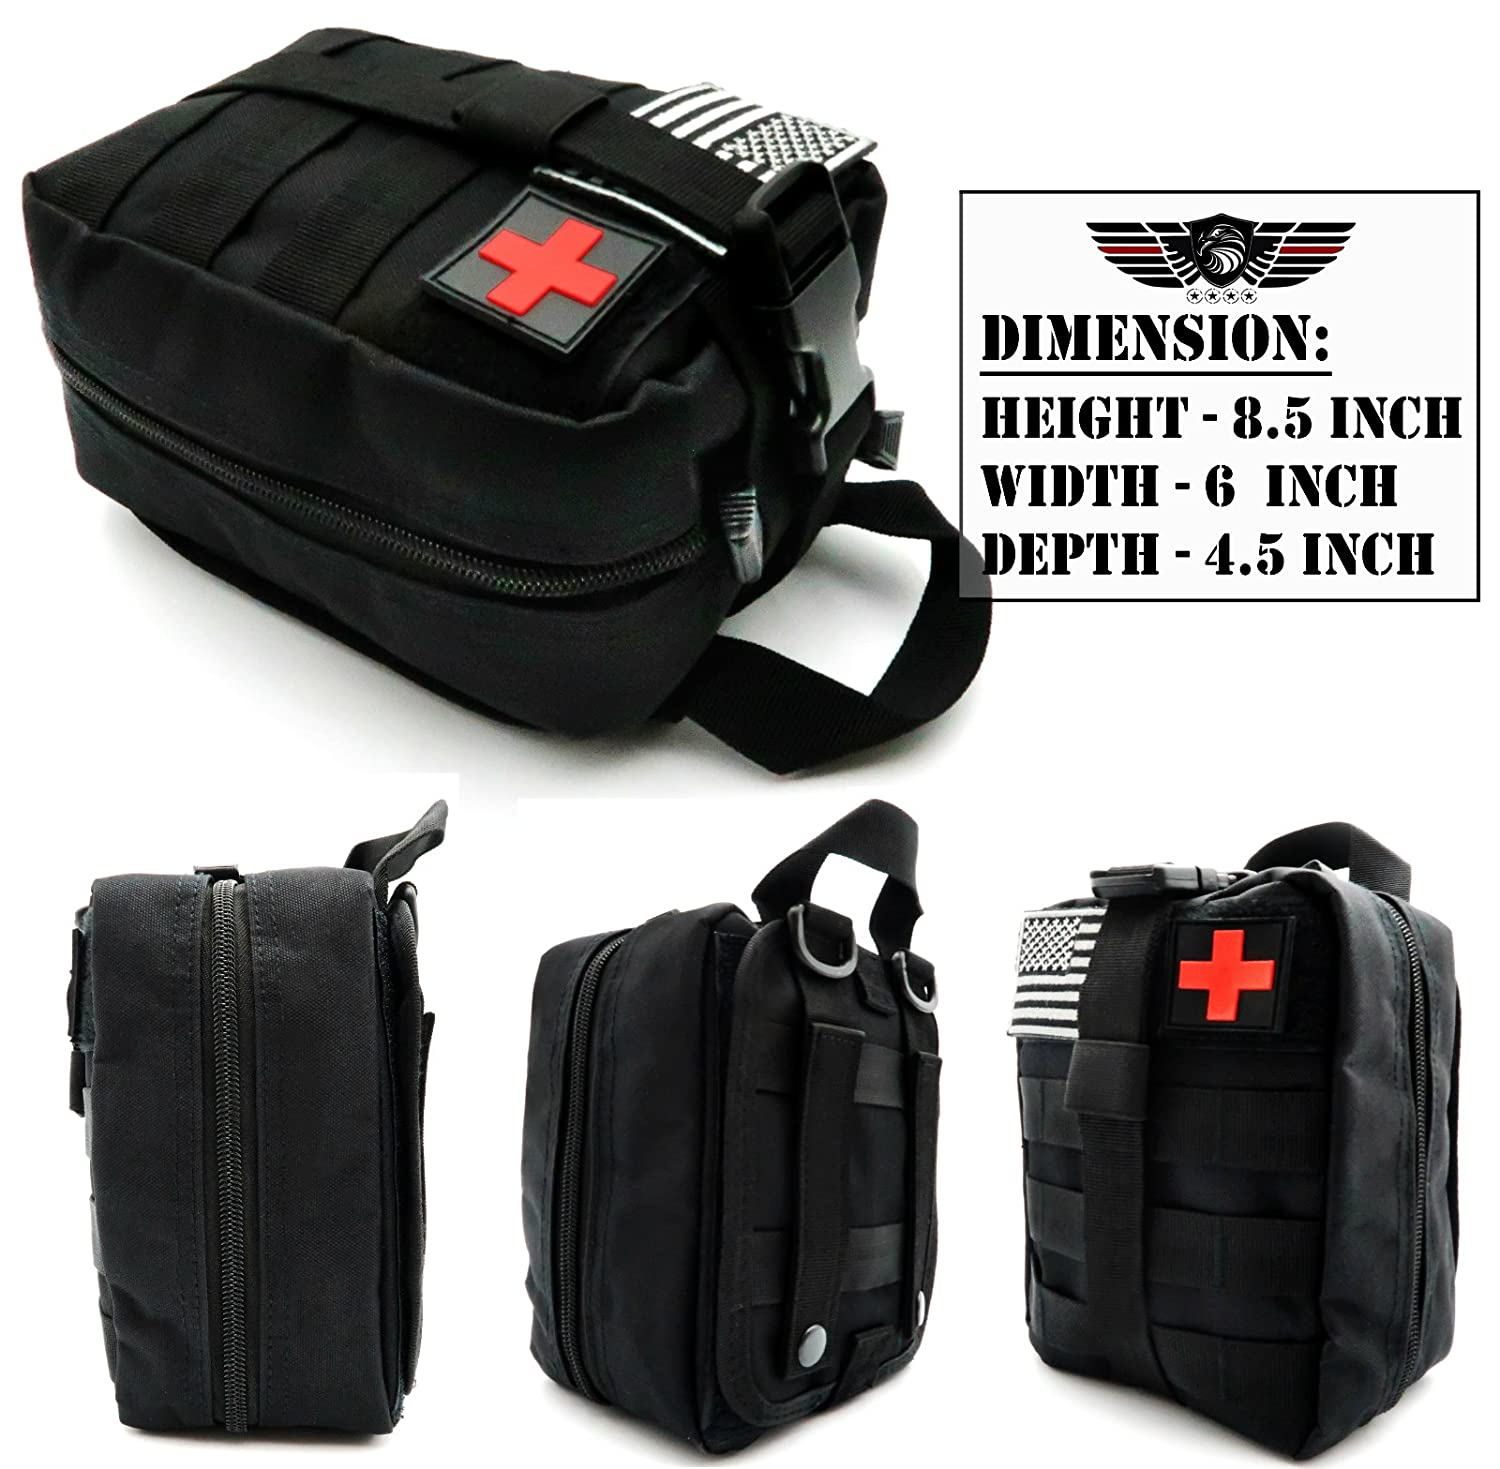 Everlit Emergency Survival Trauma Kit With Tourniquet 36 Taa Furla Metropolis Comic Splint Military Combat Tactical Ifak For First Aid Response Critical Wounds